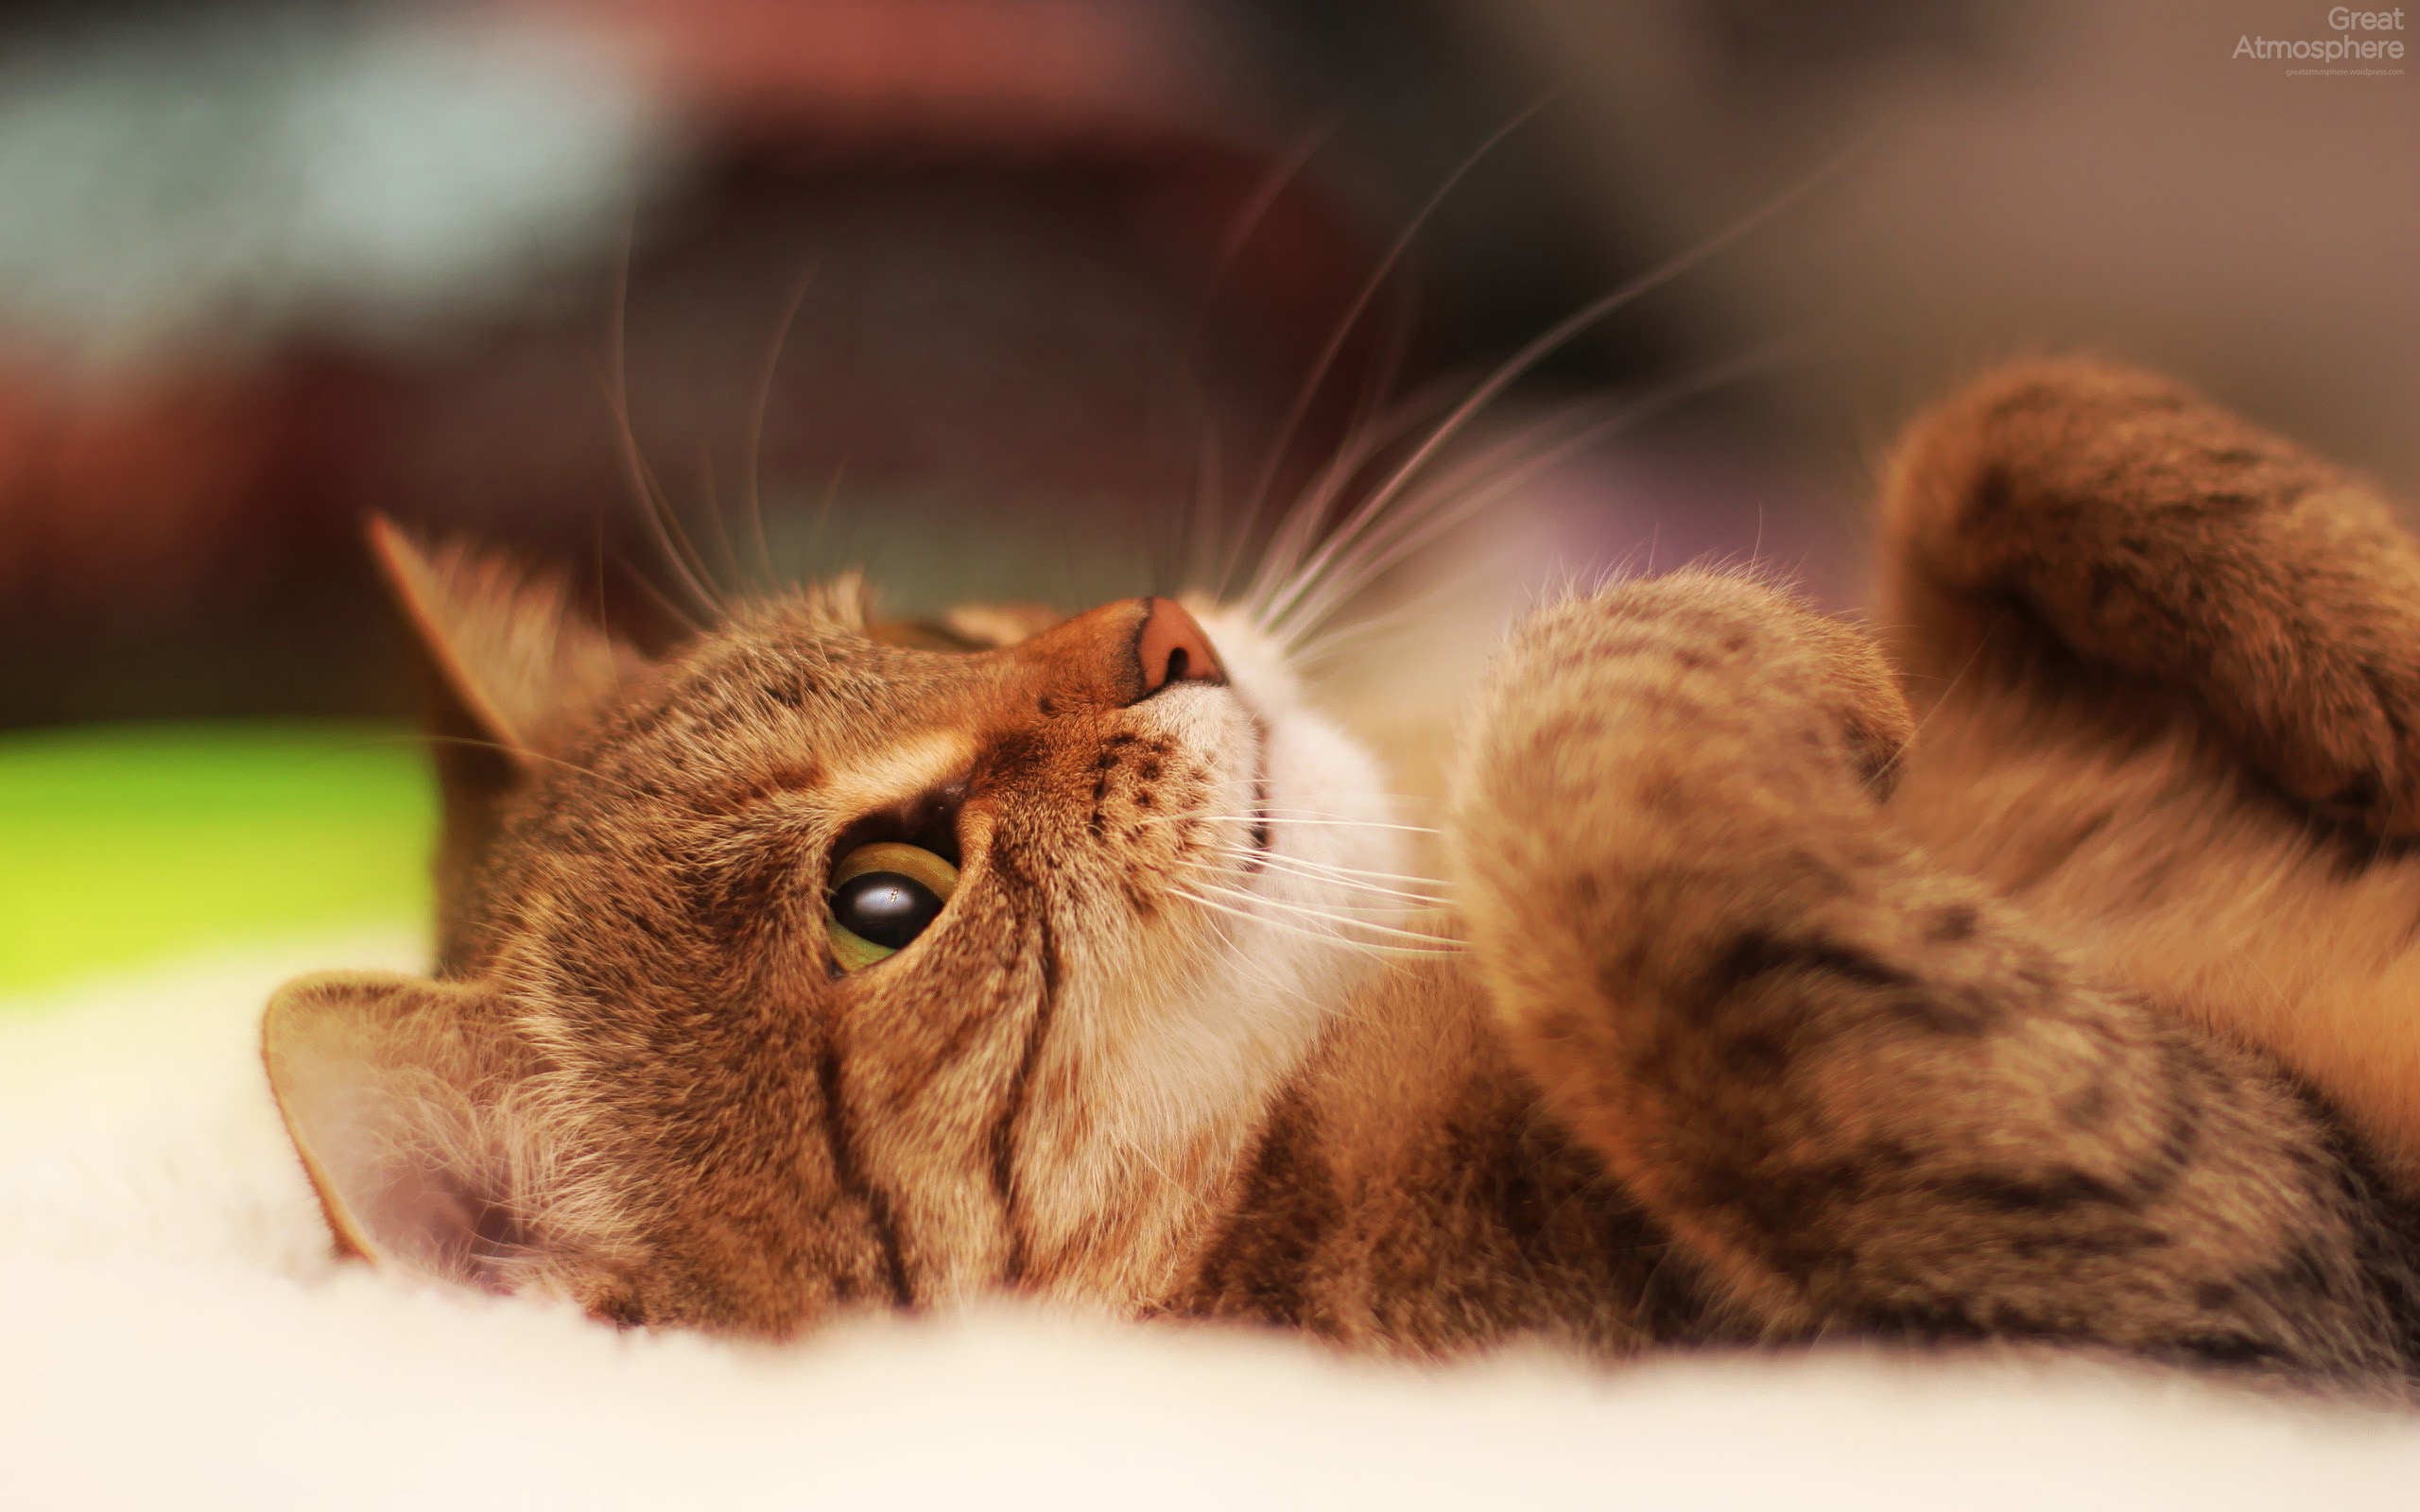 cat-whiskers-beautiful-animal-photography-great-atmosphere